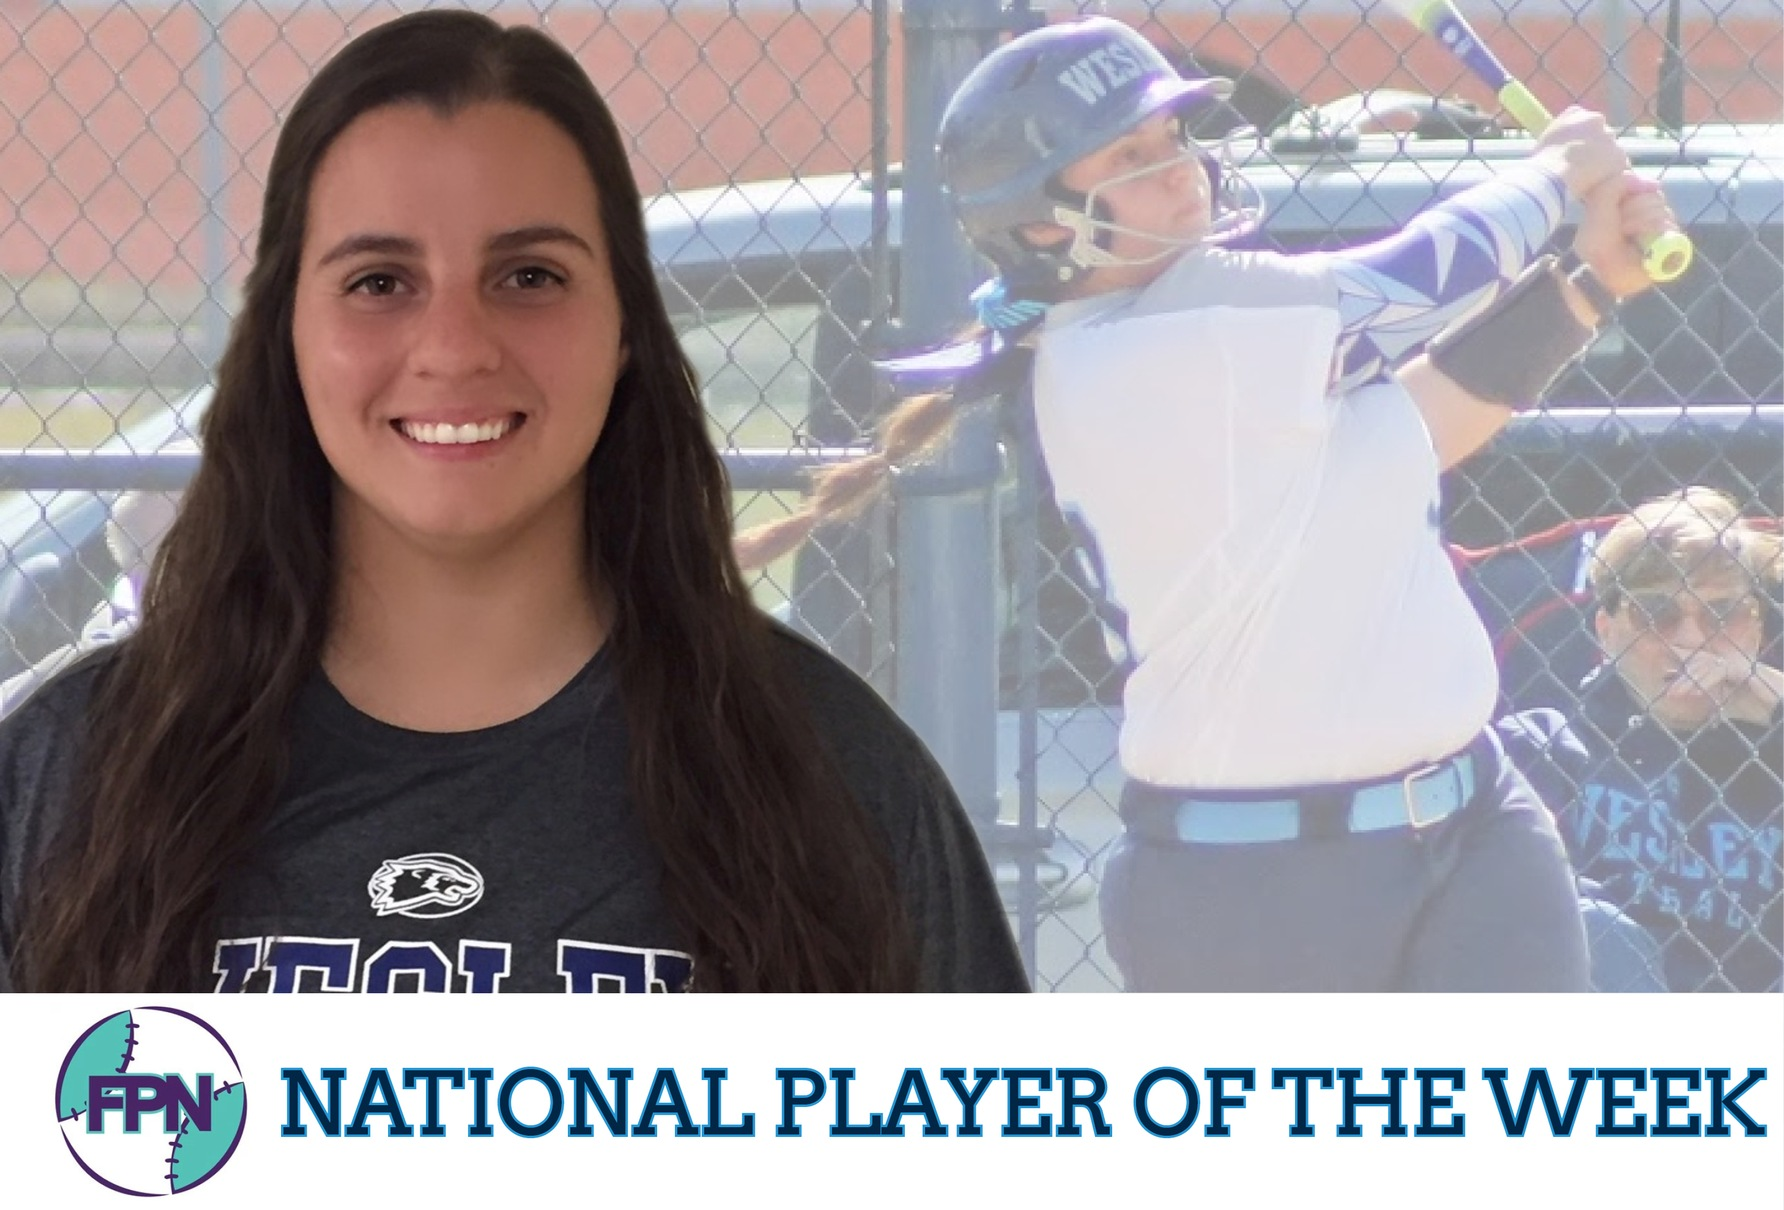 Marcano earns second Fastpitch News National Player of the Week award